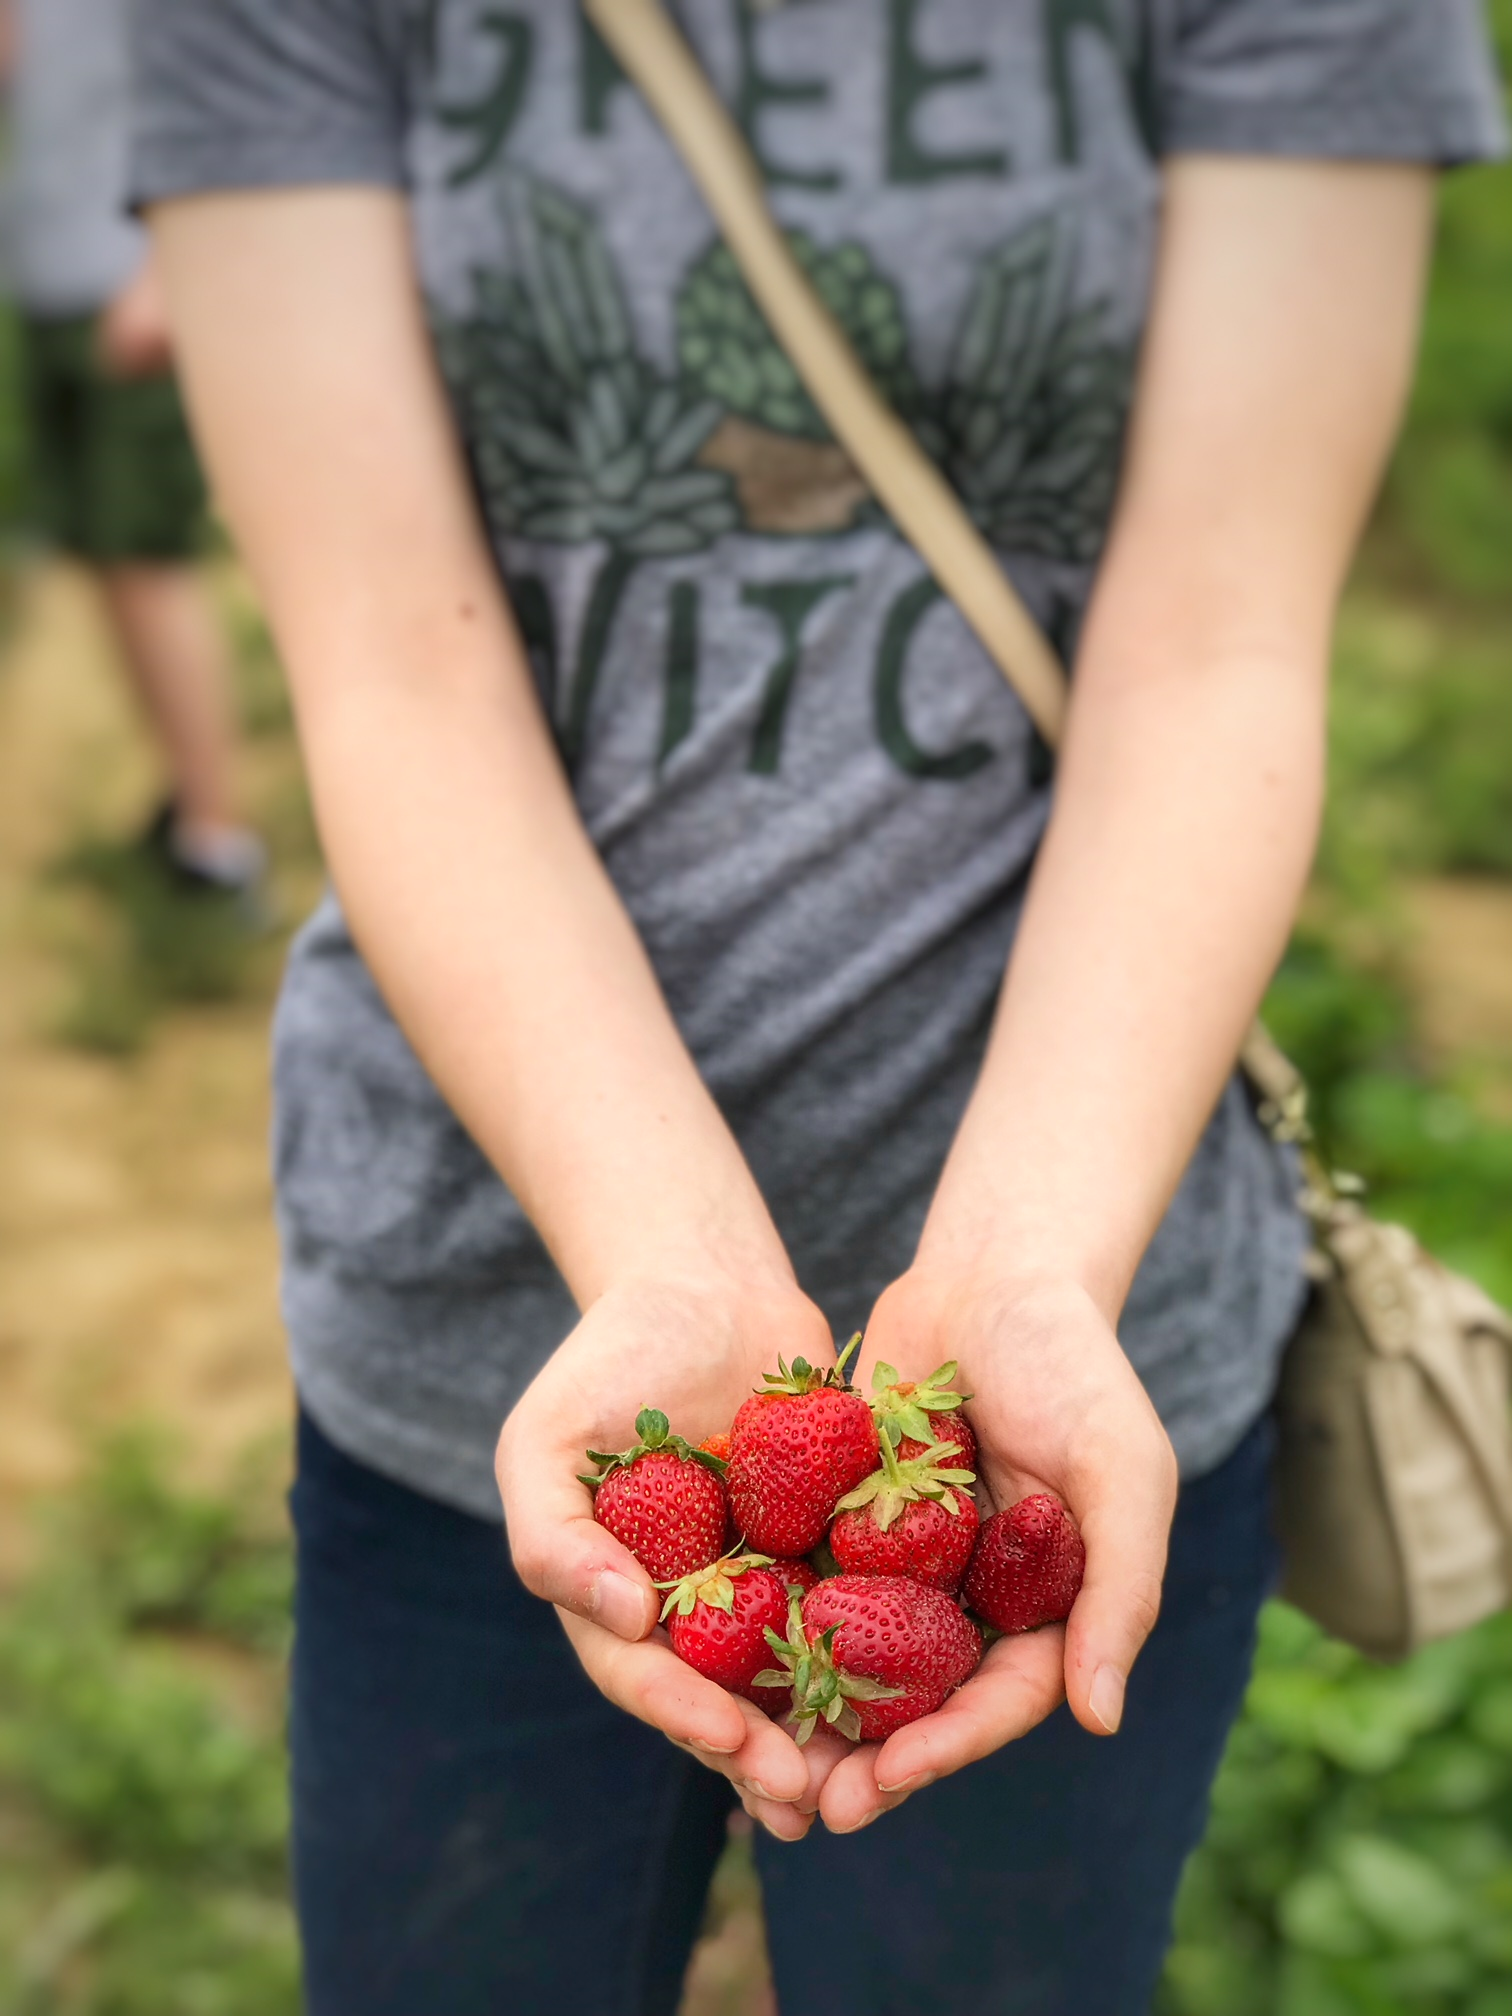 A family tradition-Picking strawberries at Holly Fork Farm-from two different perspectives